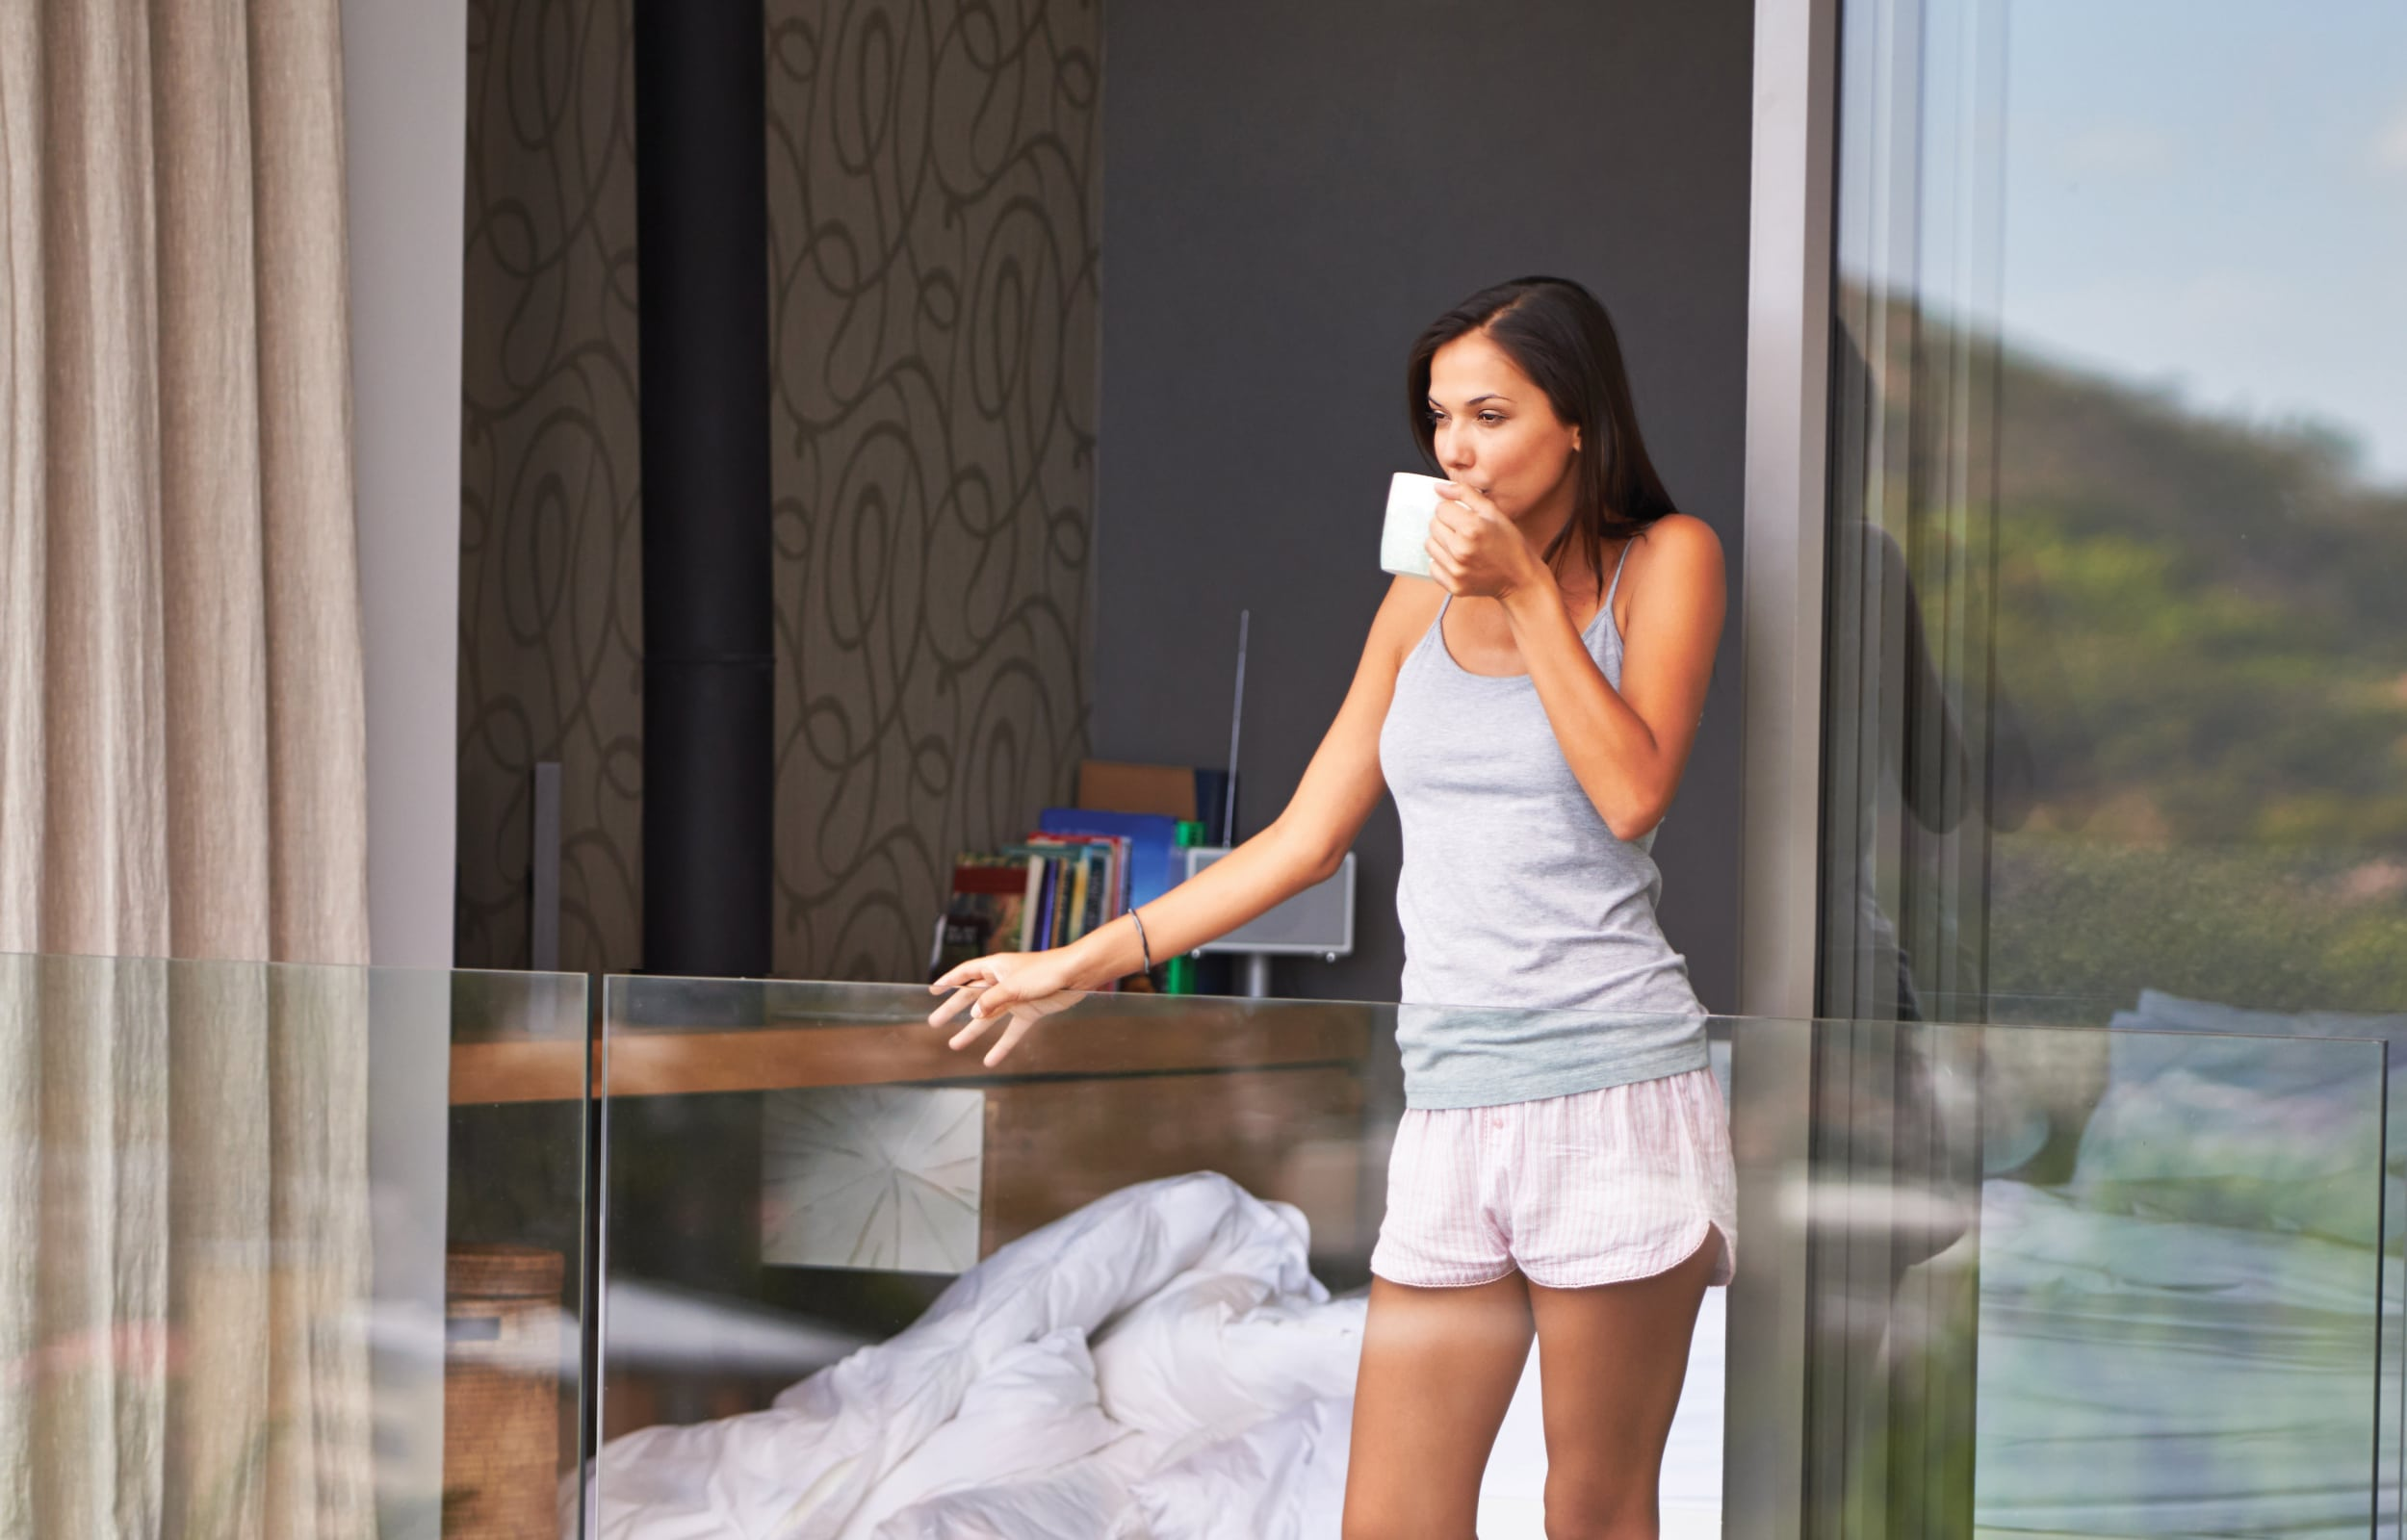 Lady leaning on IDSystems glass balustrade